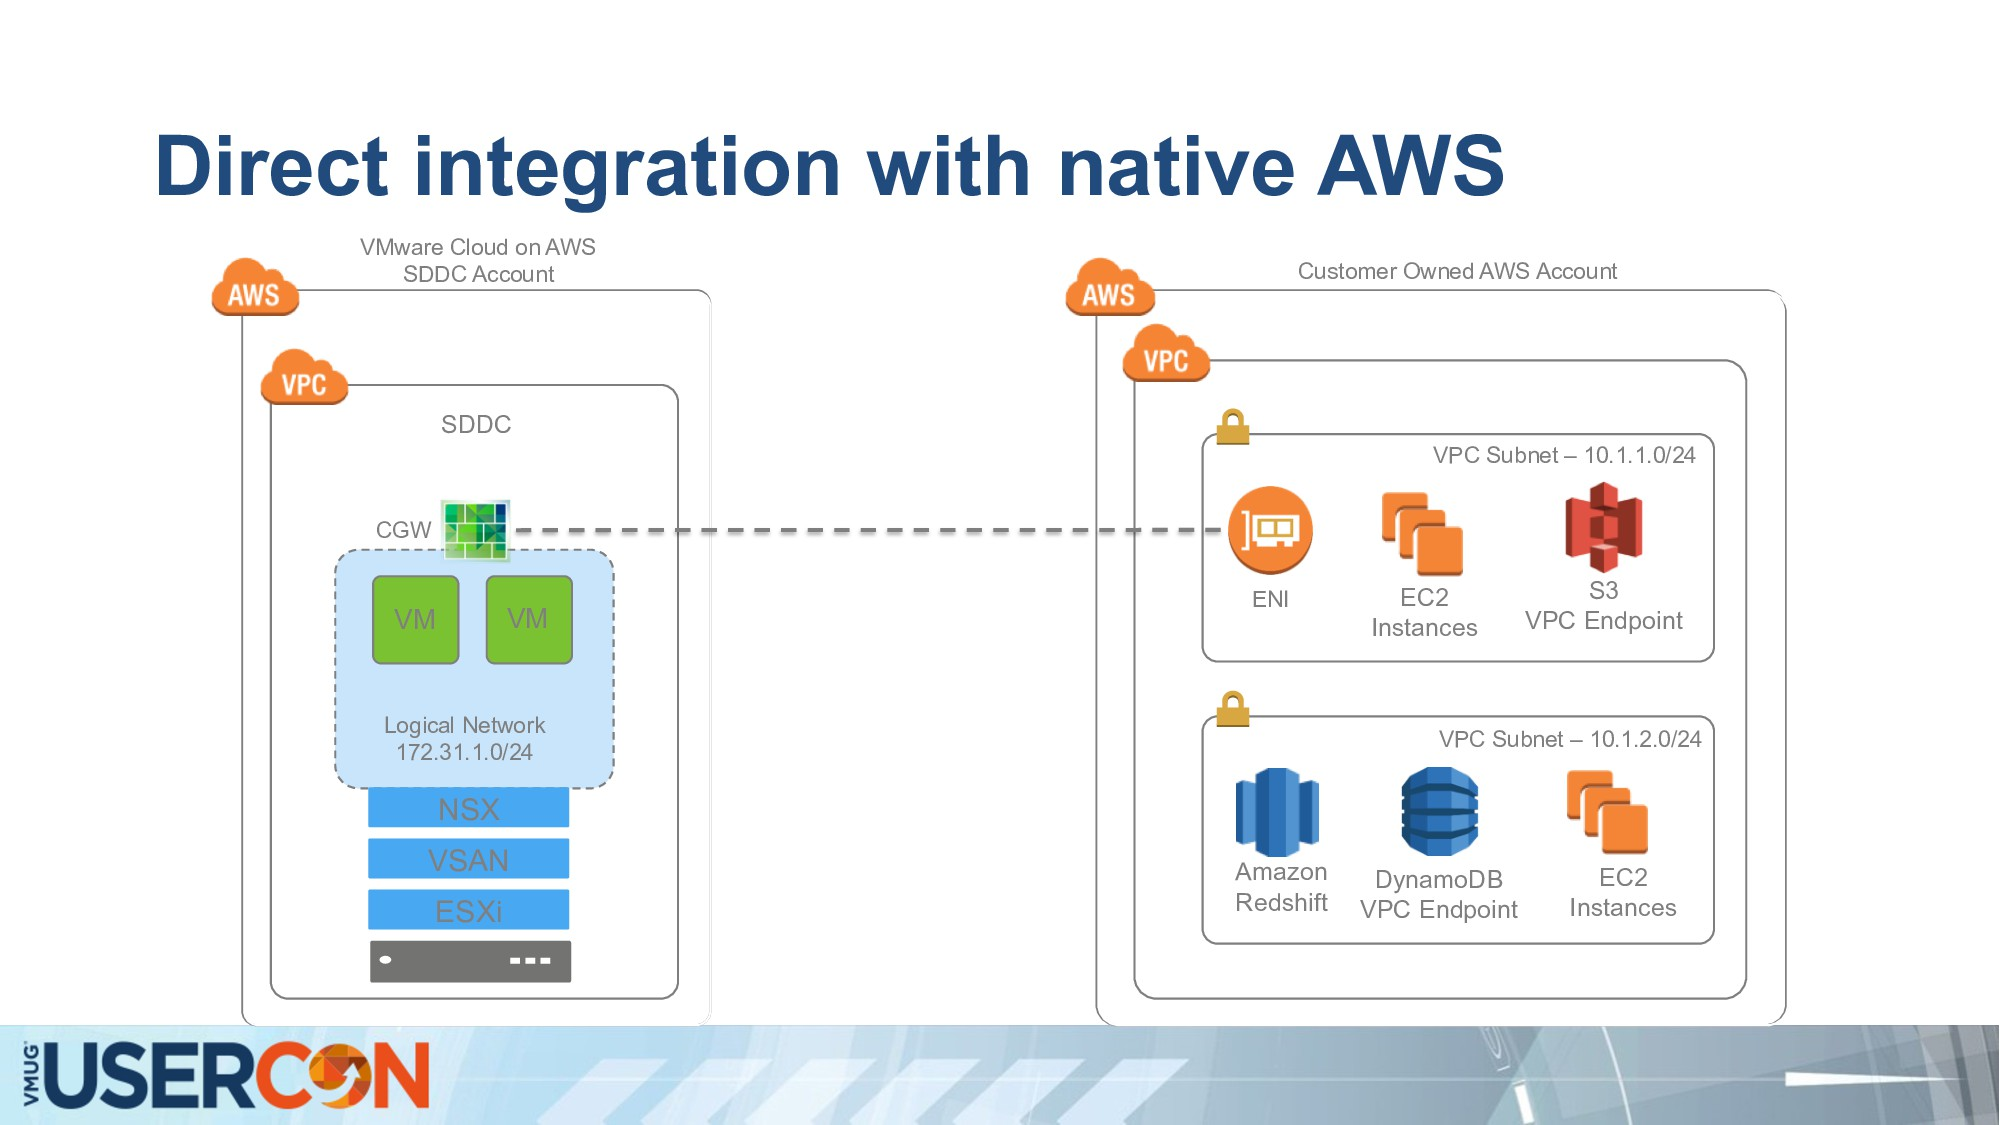 Direct integration with native AWS VM VSAN VM N...